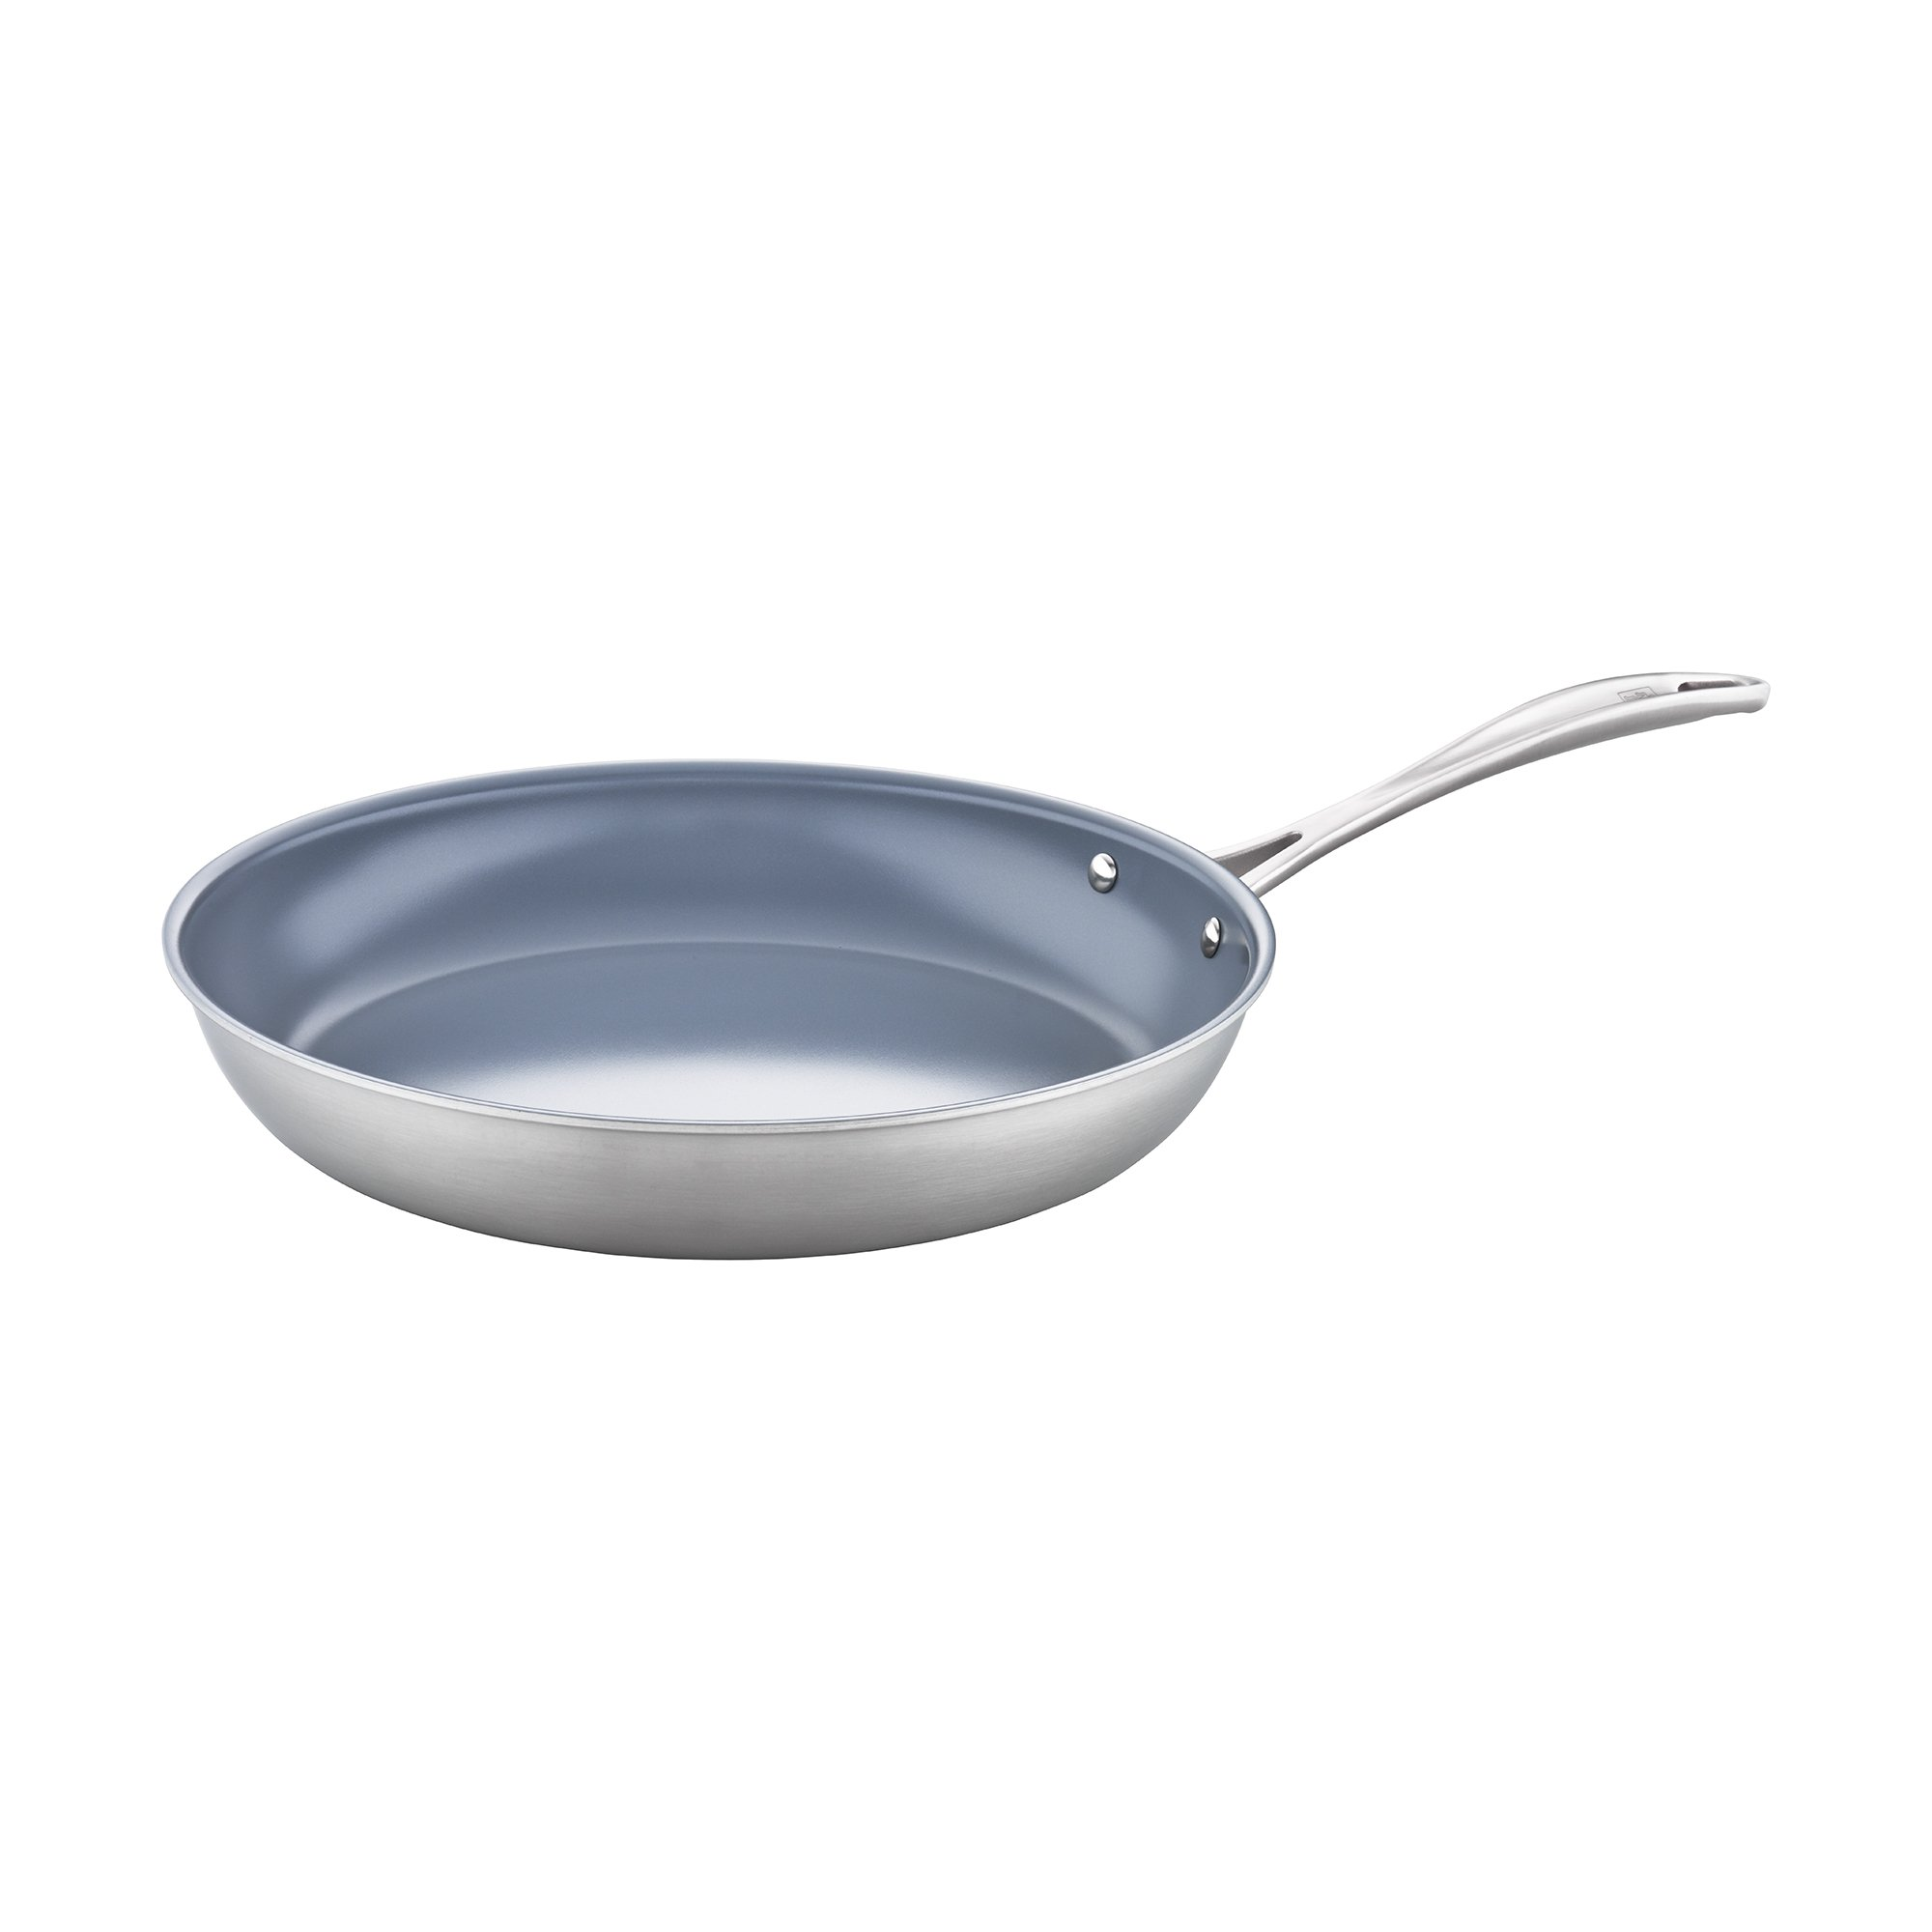 ZWILLING Spirit 3-ply 12'' Stainless Steel Ceramic Nonstick Fry Pan